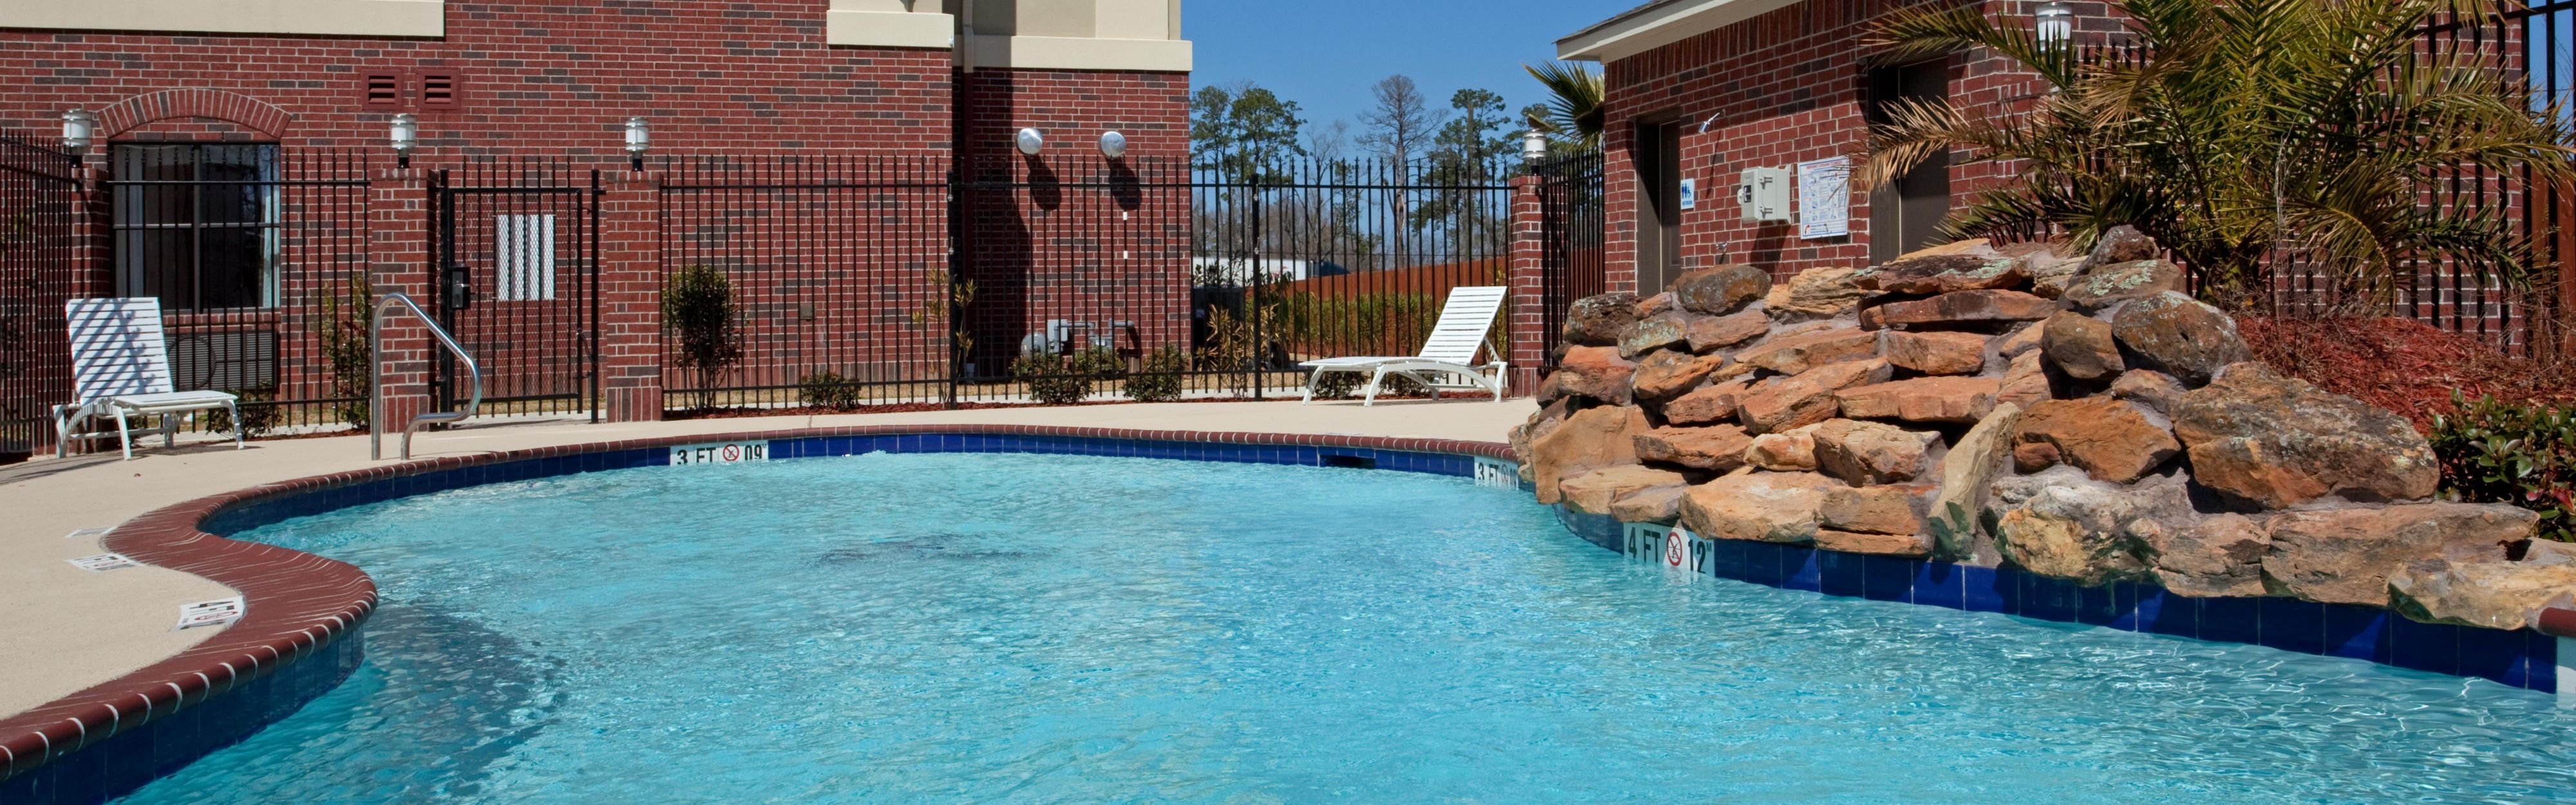 Holiday Inn Express & Suites Vidor South image 2